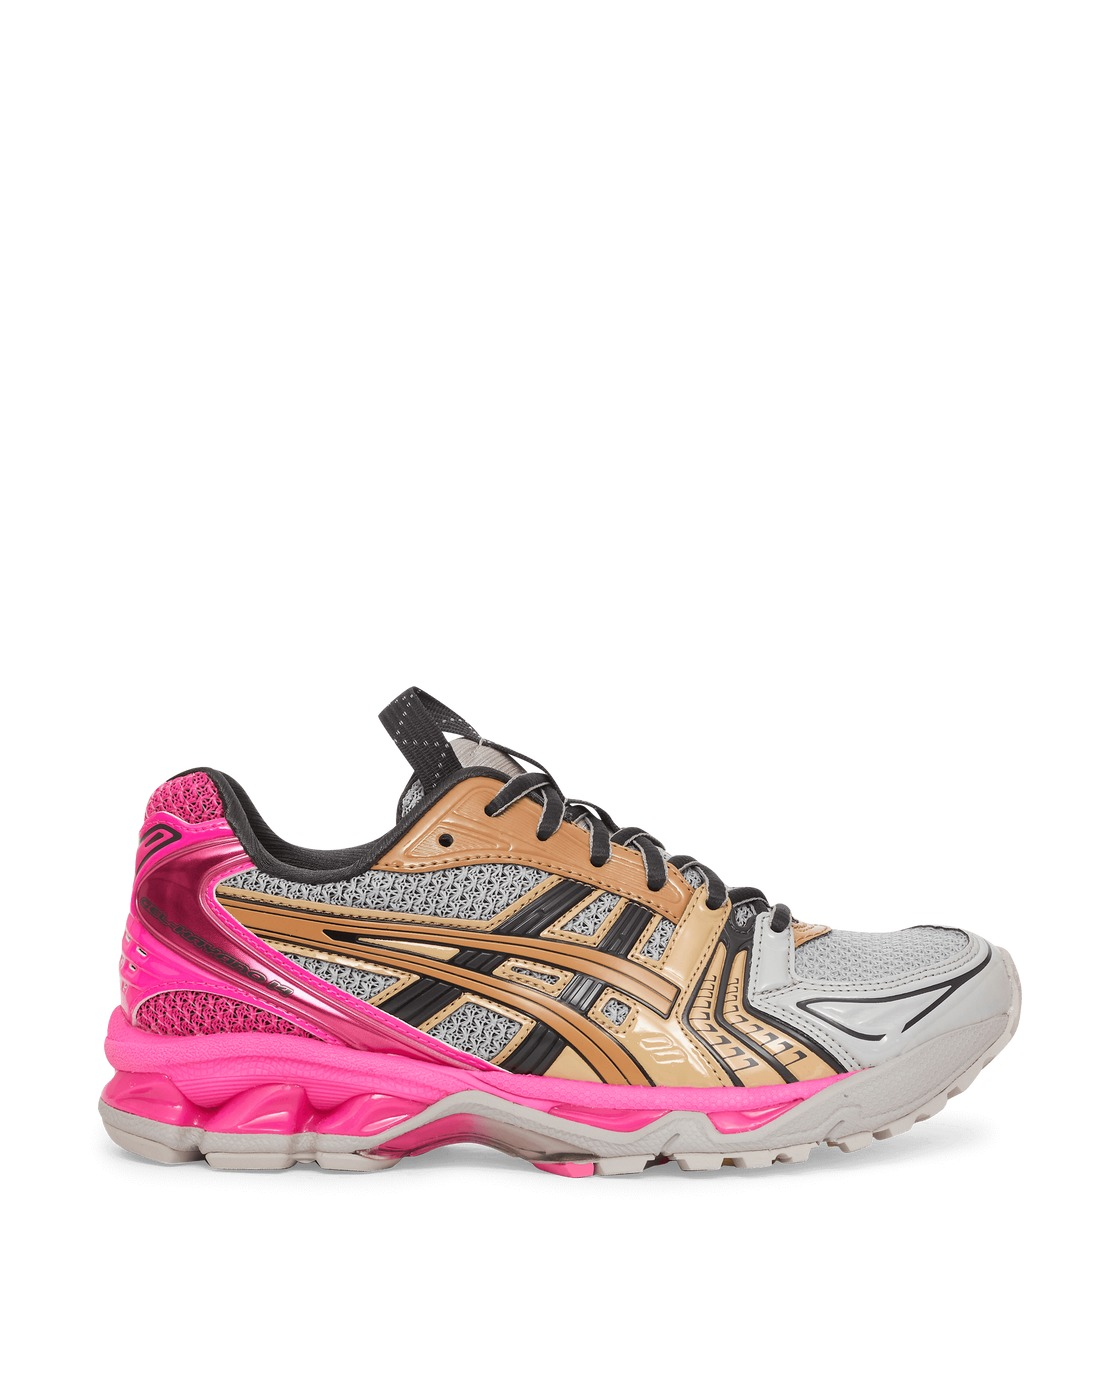 Photo: Asics Ub1 S Gel Kayano 14 Sneakers Oyster Grey/Pink Glo